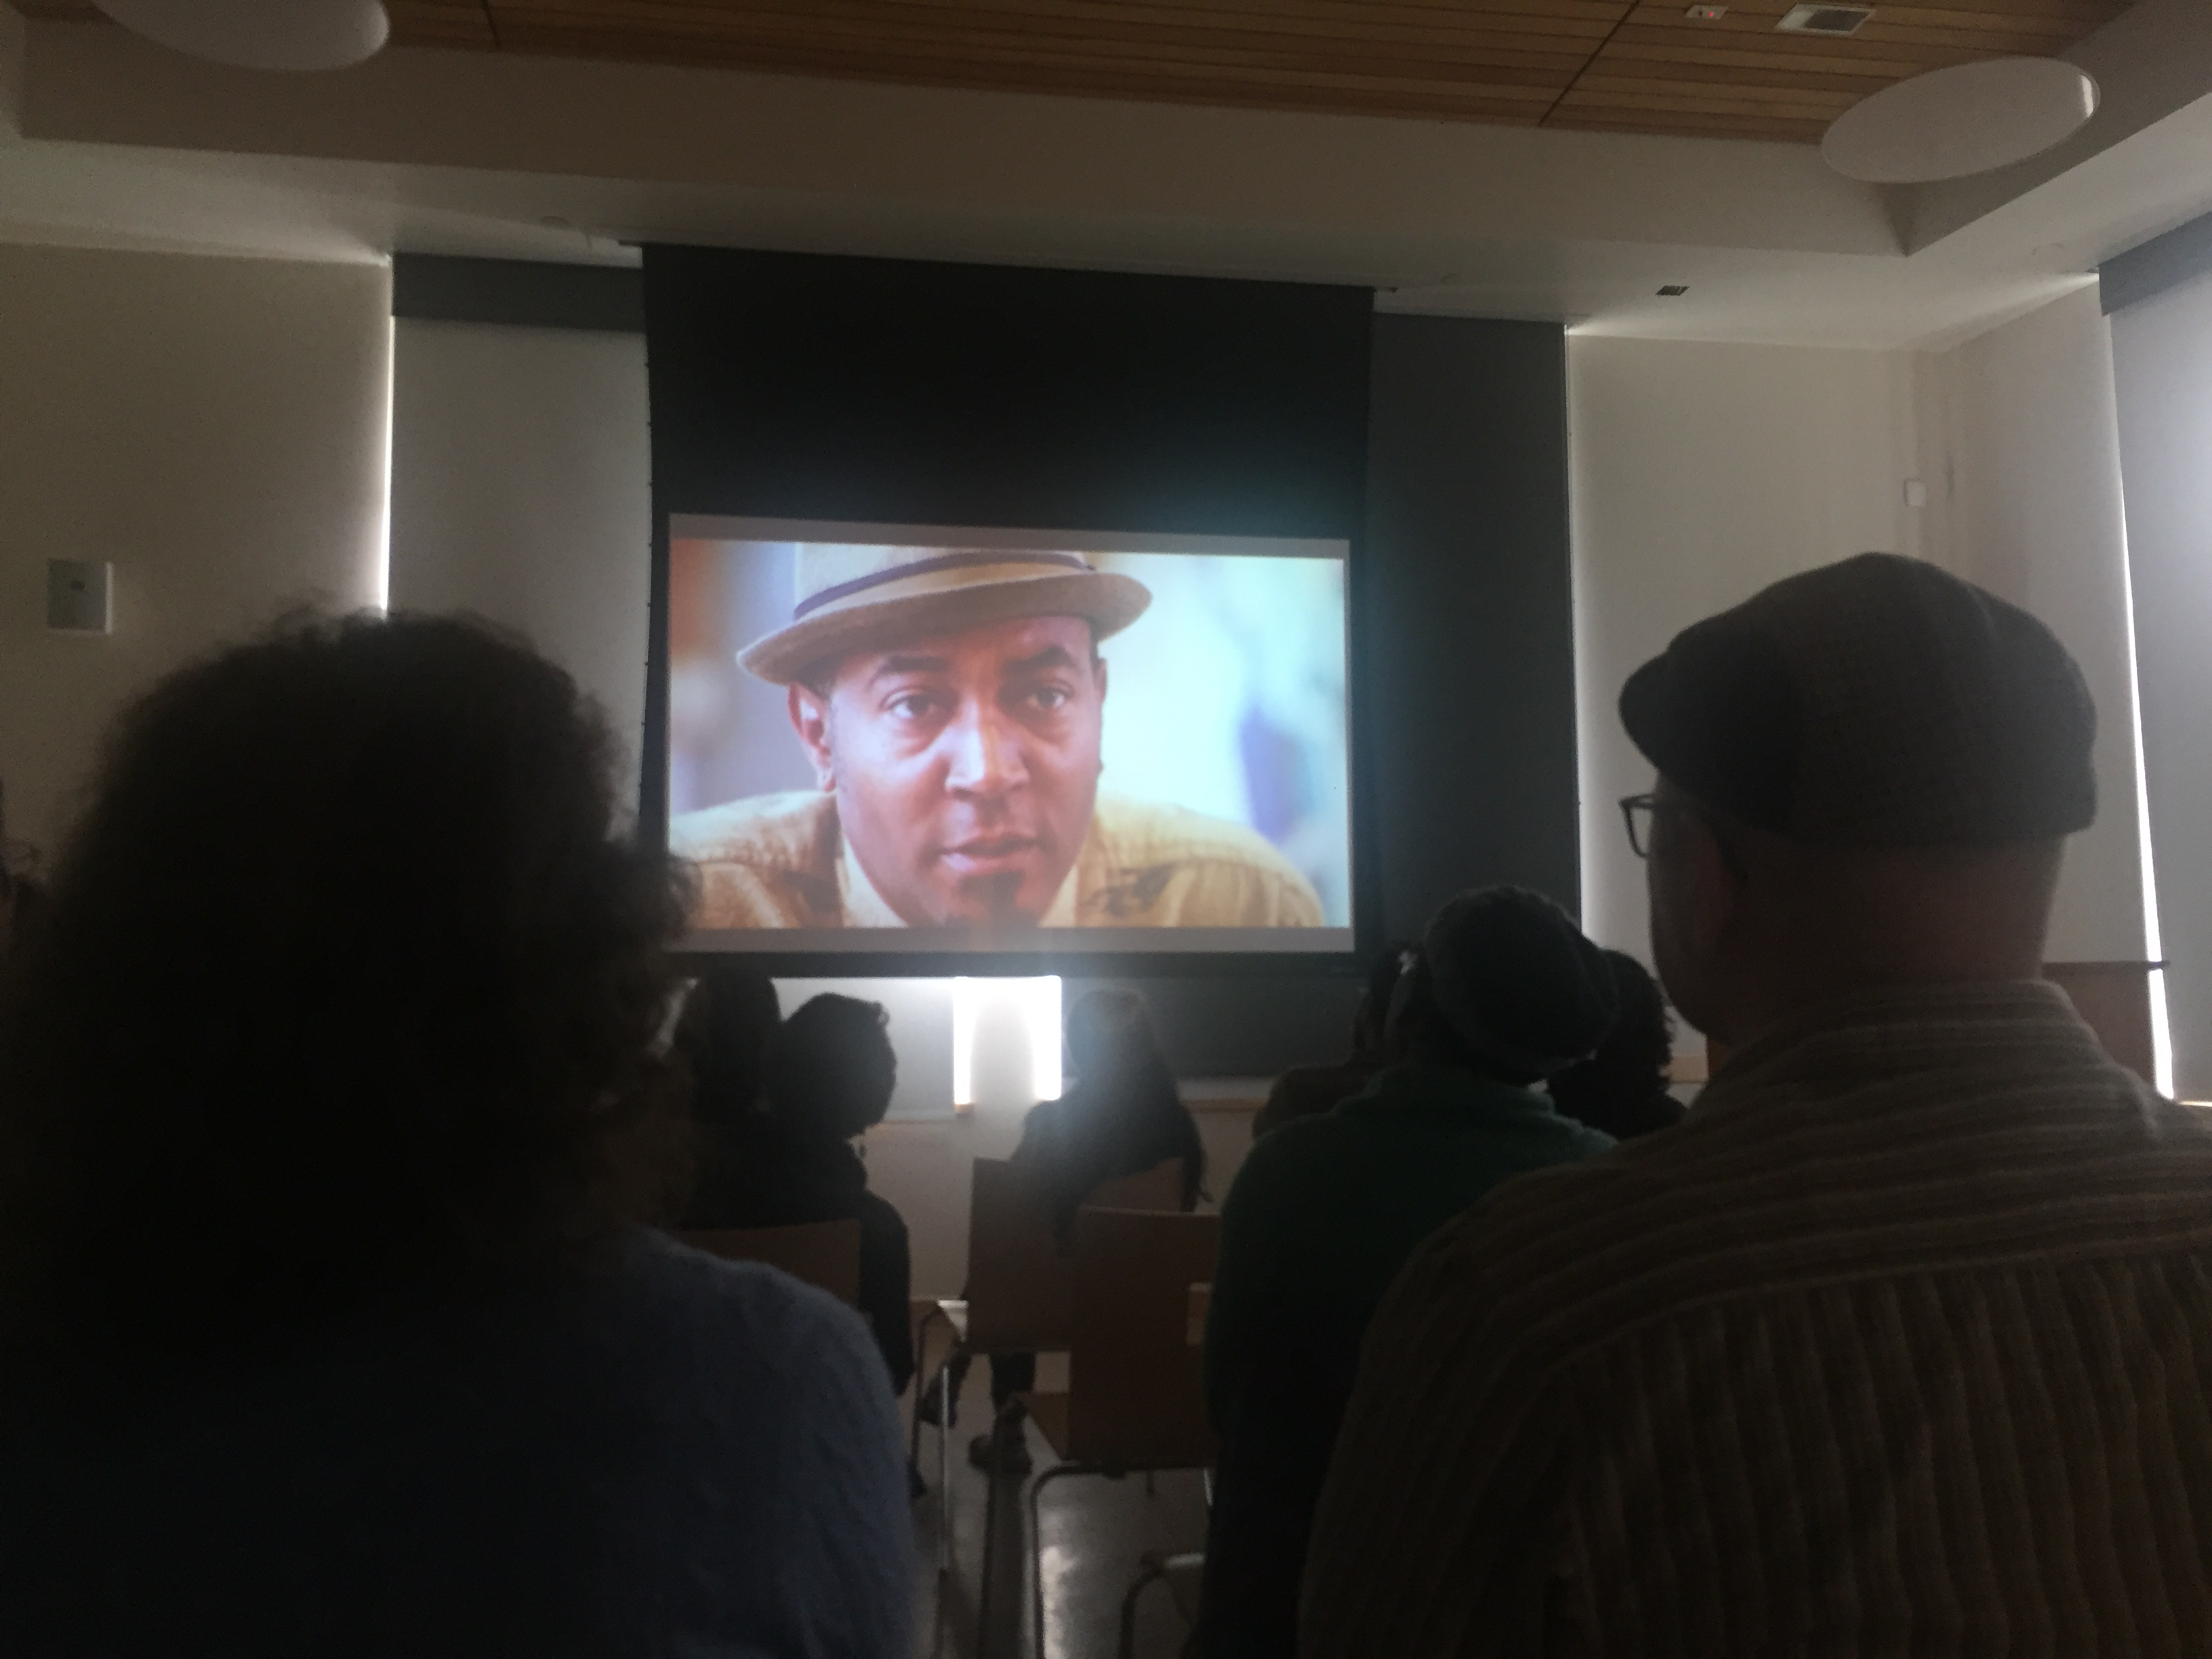 Film was screened at Berkeley and was extremely well received. The editor of the film - Tal Skloot also joined in.